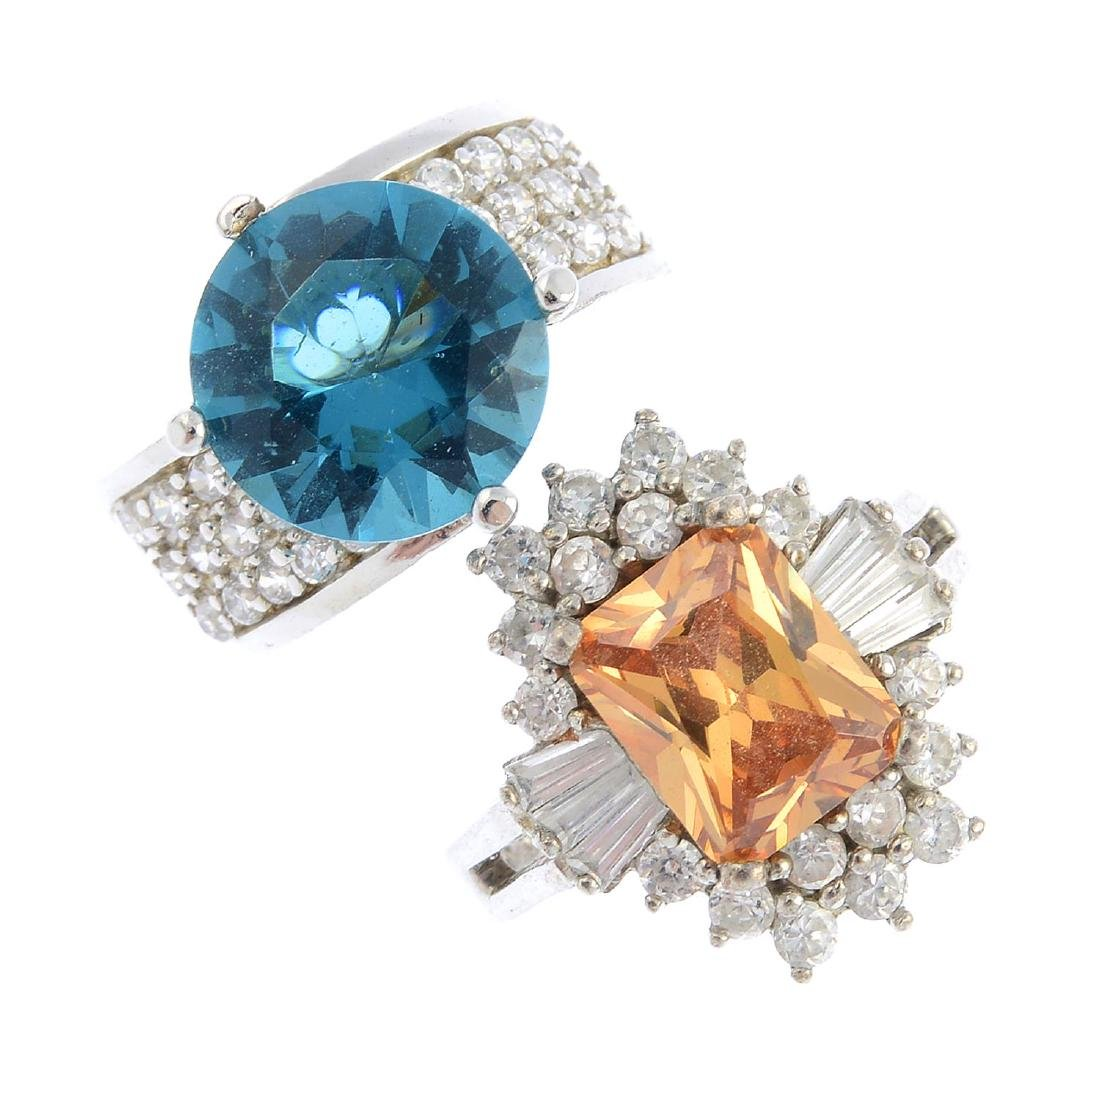 Twenty-eight rings. To include a blue cubic zirconia